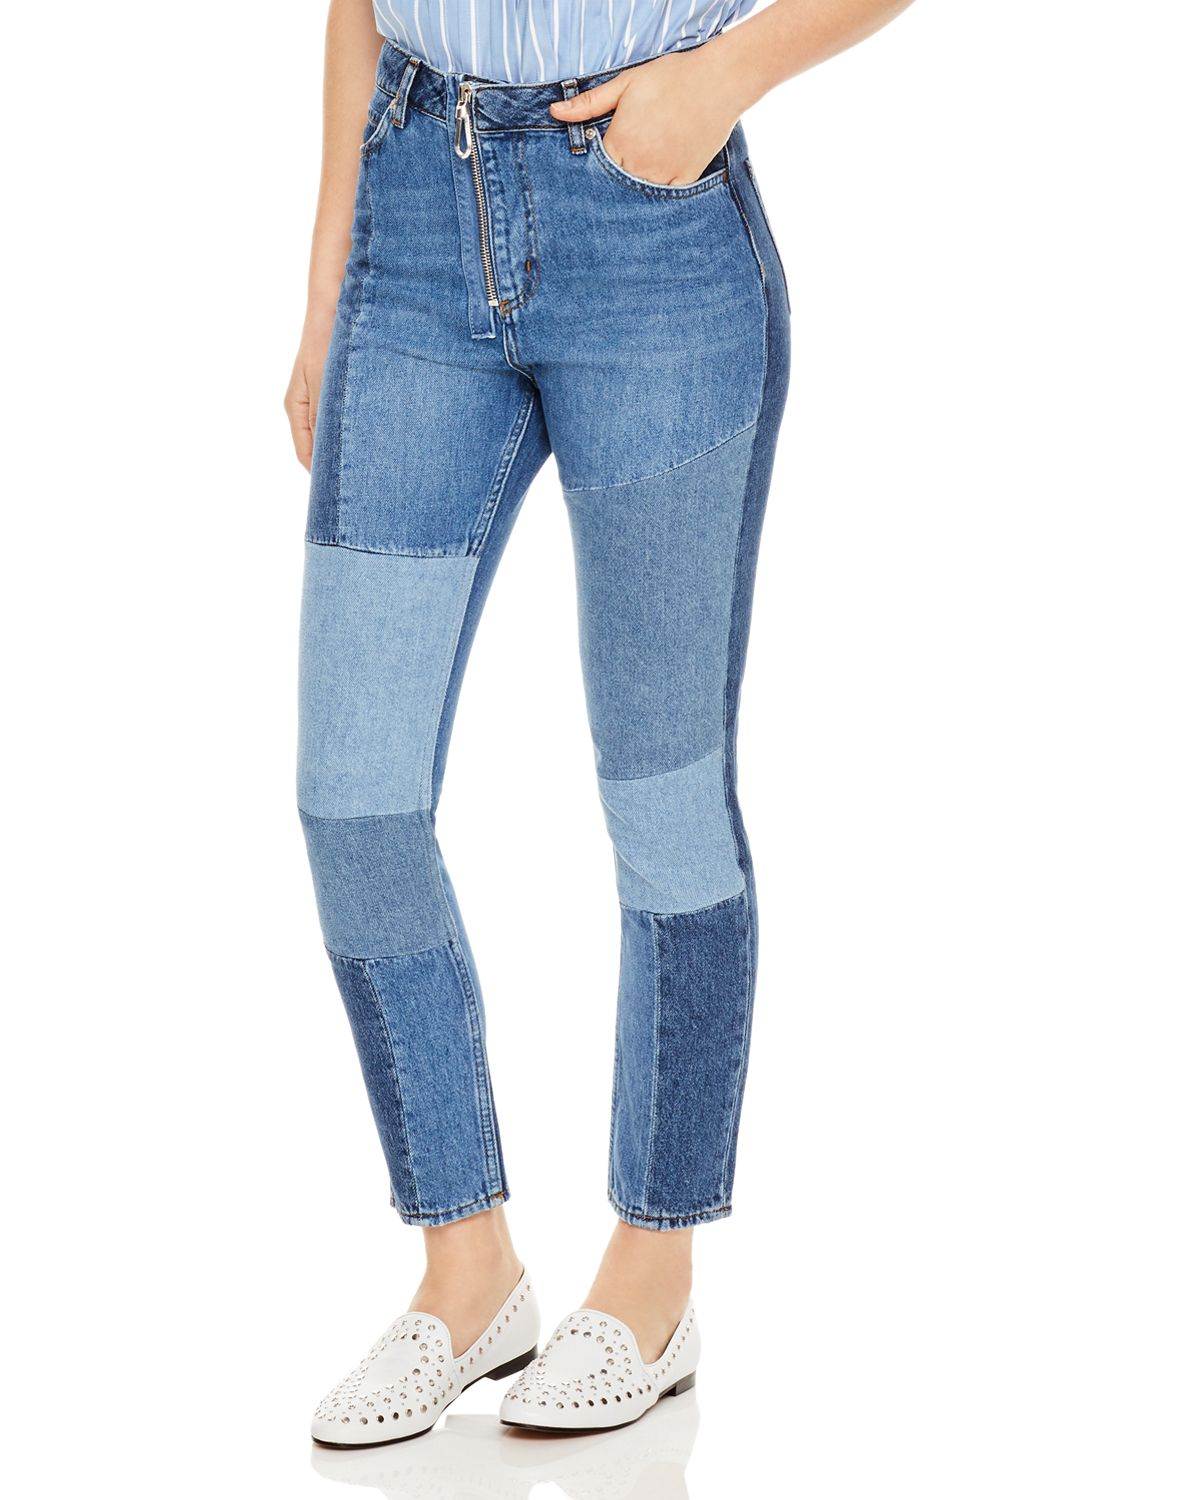 Hani Cropped Patchwork Jeans by Sandro